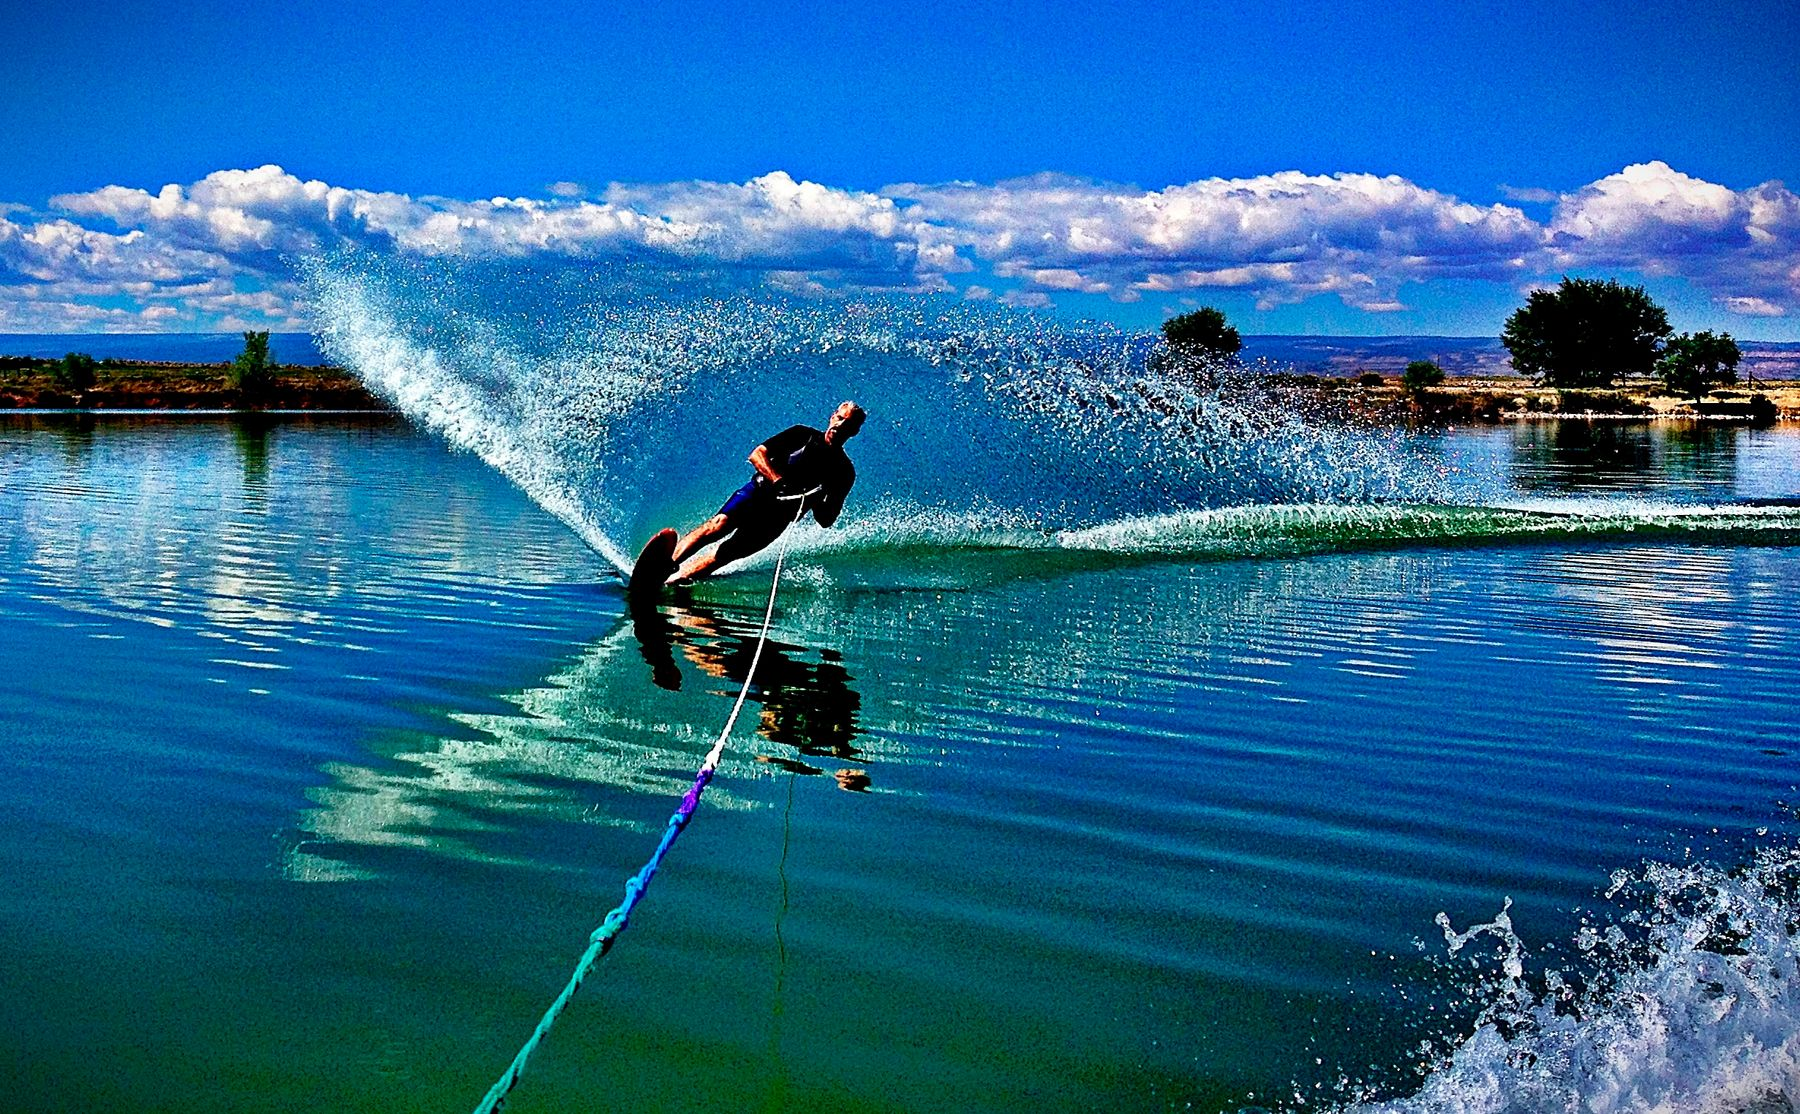 man water skiing with large wave